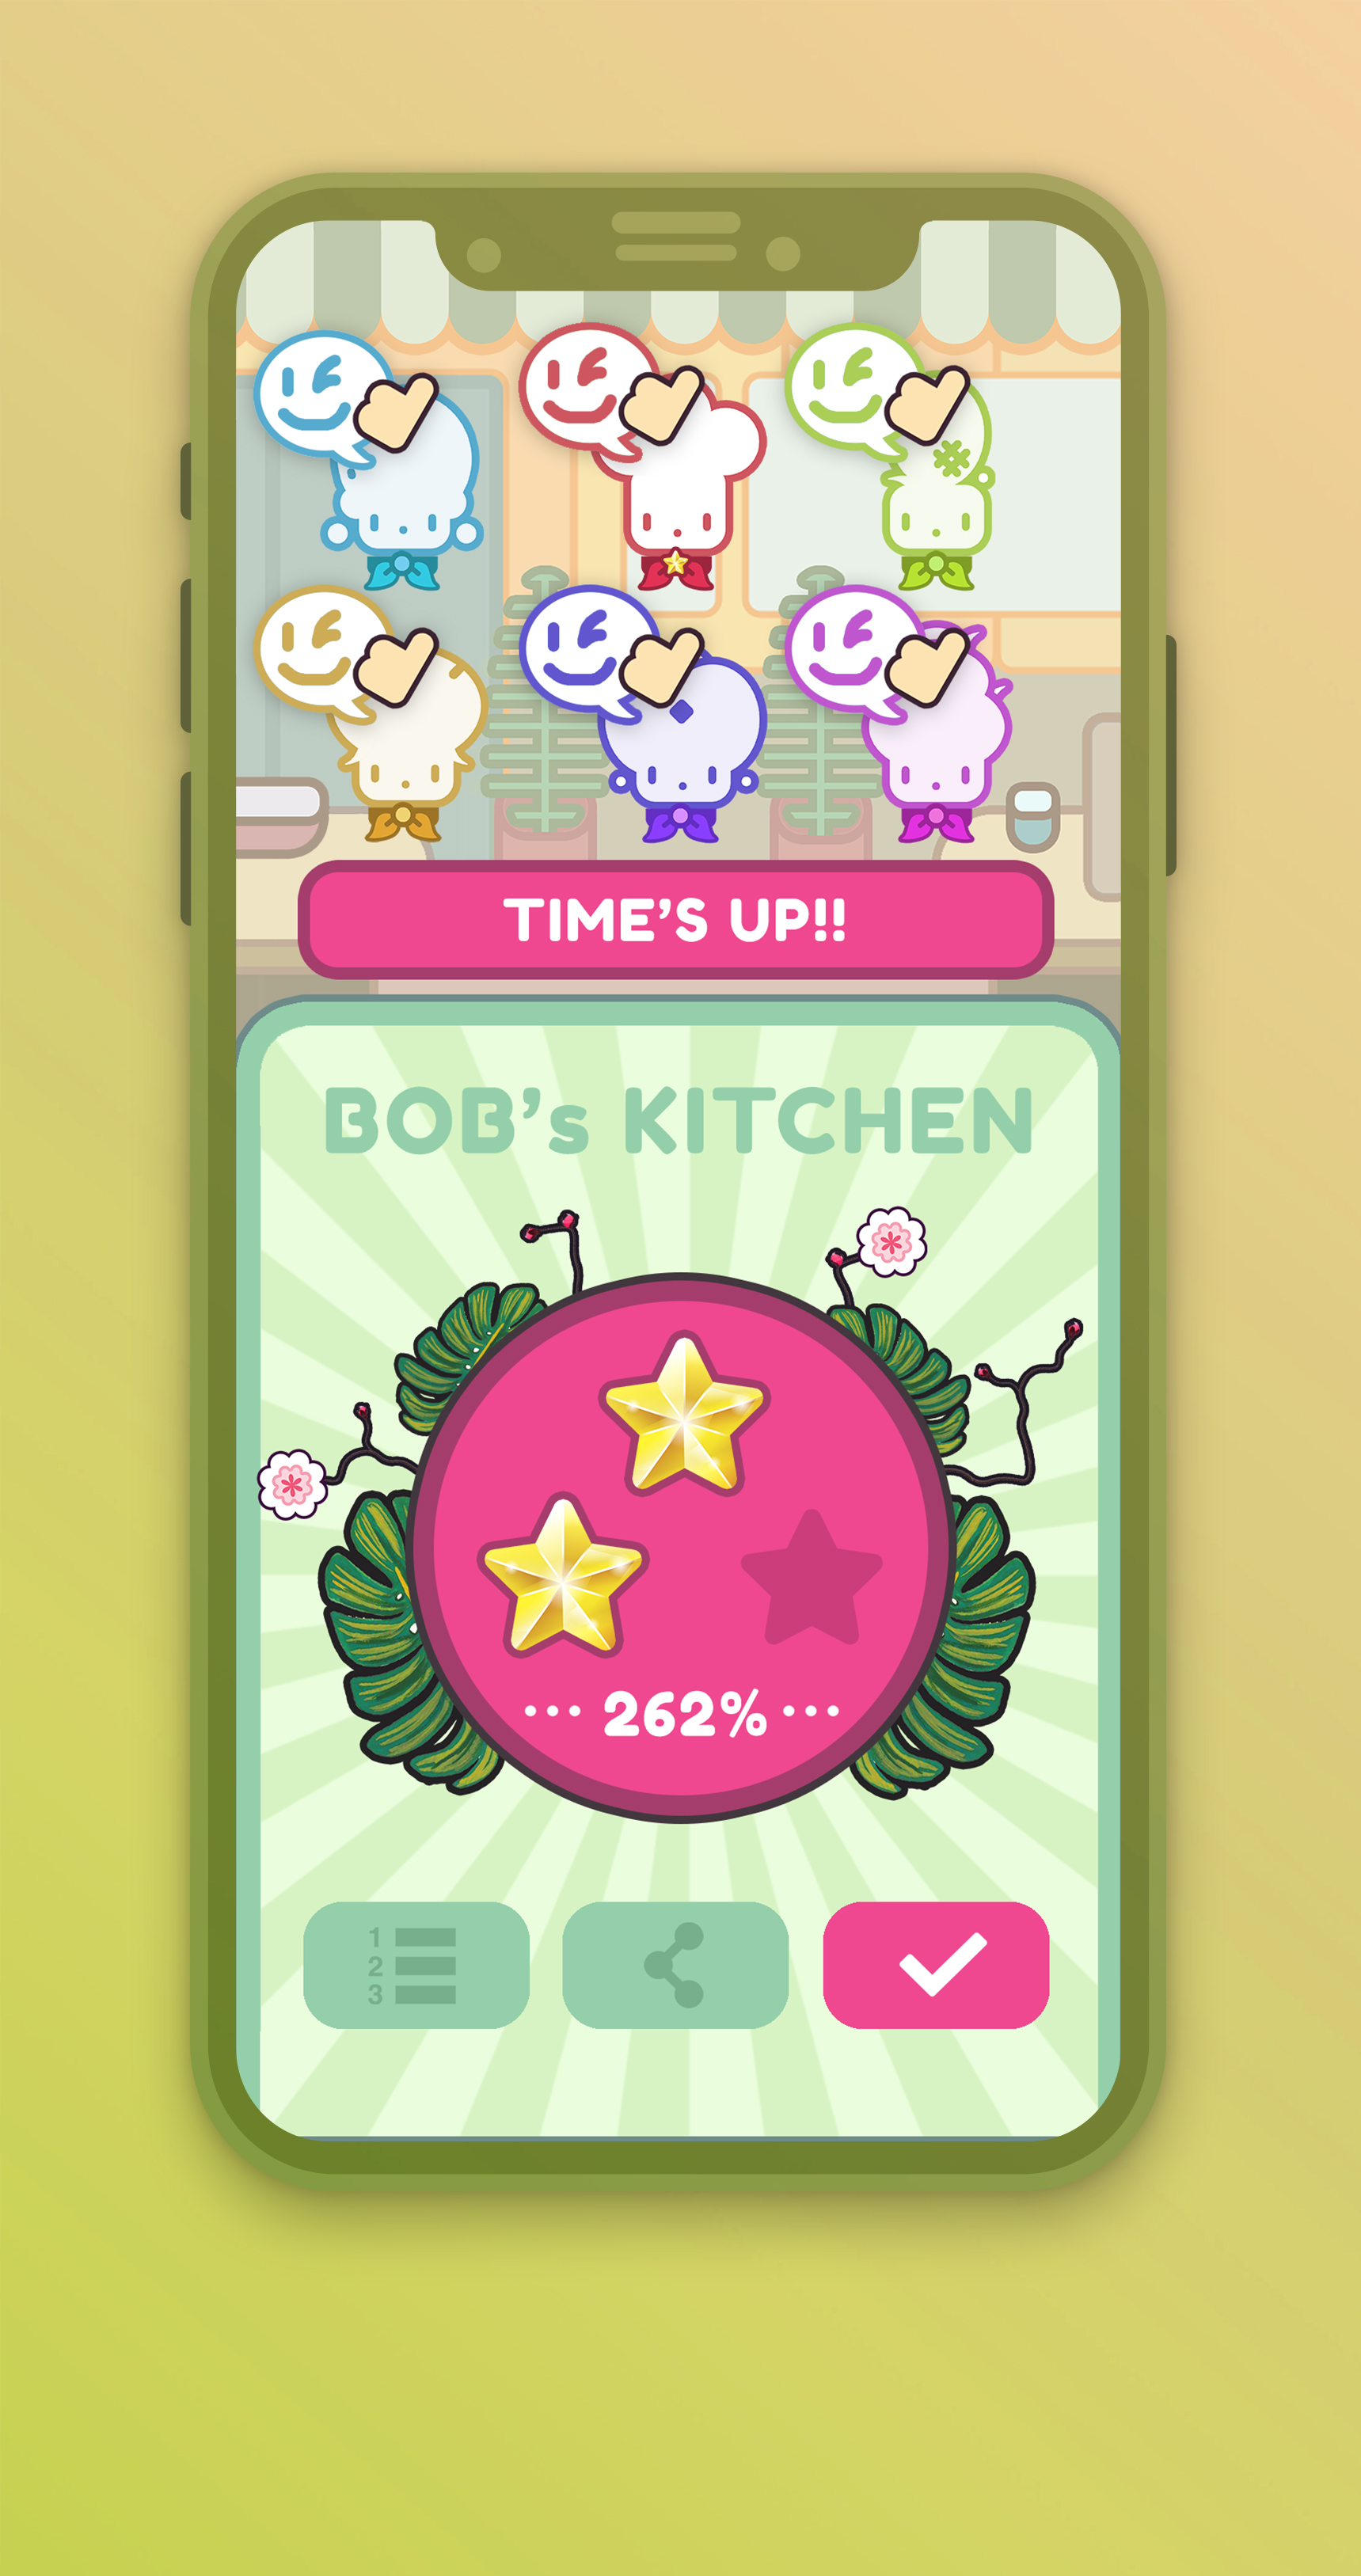 PLAN ITDespite its cute n' simple APPEARANCE, TOO MANY COOKS is incredibly satisfying when players push DIVISION OF LABOUR and TEAMWORK to the next level!  Take those scores to the global leaderboards - its your FRIENDS VS the WORLD!    -